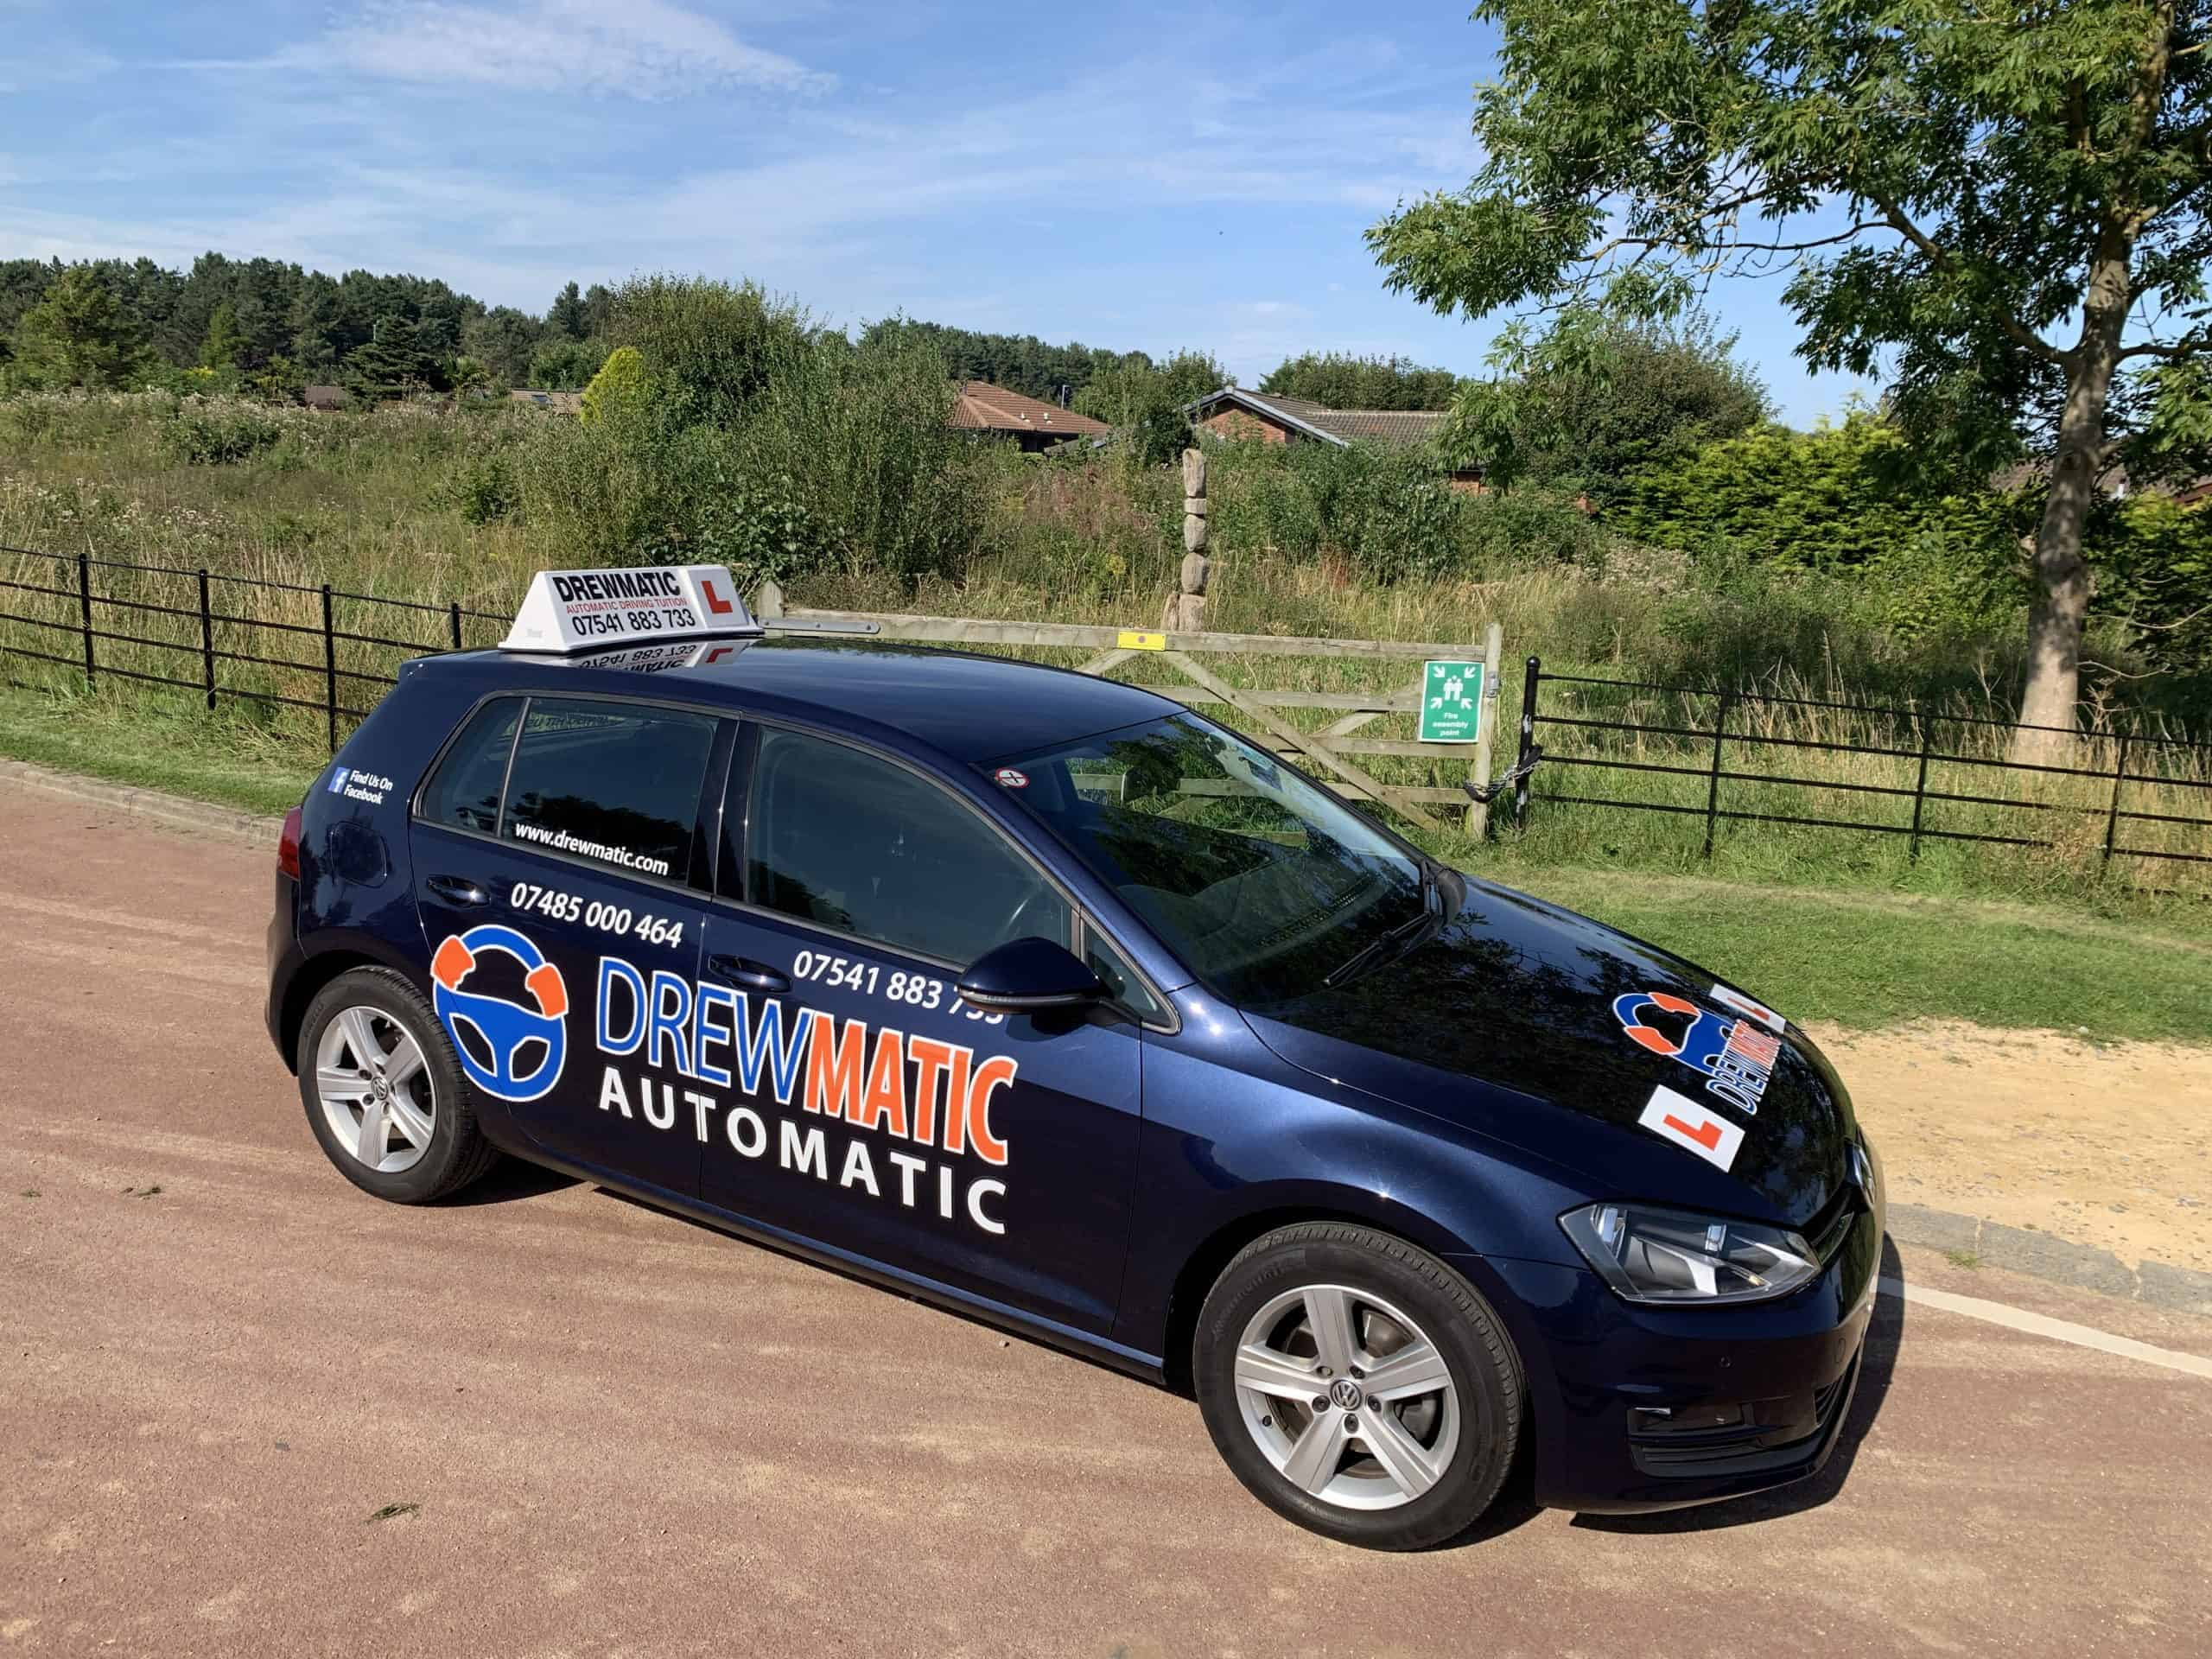 Automatic Driving Lessons Gateshead